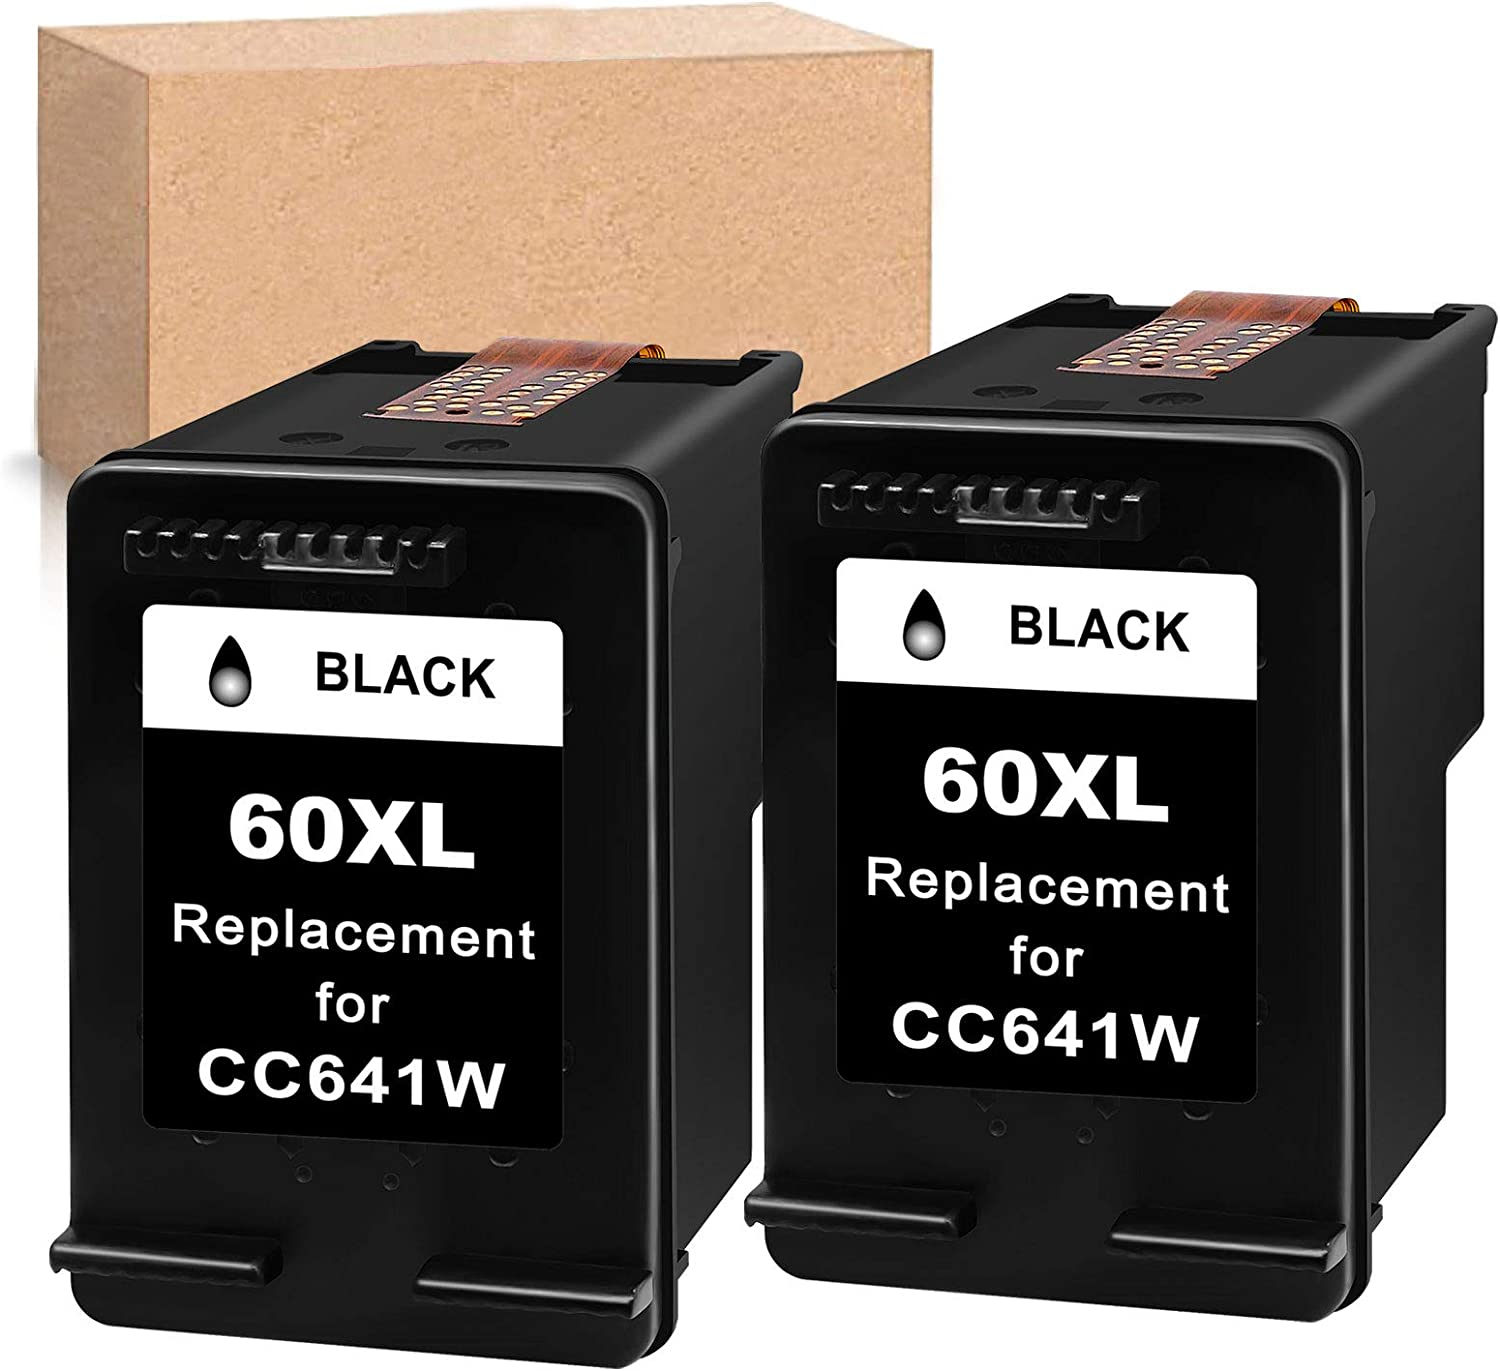 Economink Remanufactured Ink Cartridge Replacement for HP 60XL 60 XL Black to use with PhotoSmart C4700 C4795 C4600 D110a Envy 120 100 114 DeskJet F4235 F4580 F4400 F2430 F4440 F2480 Printer (2 Pack)